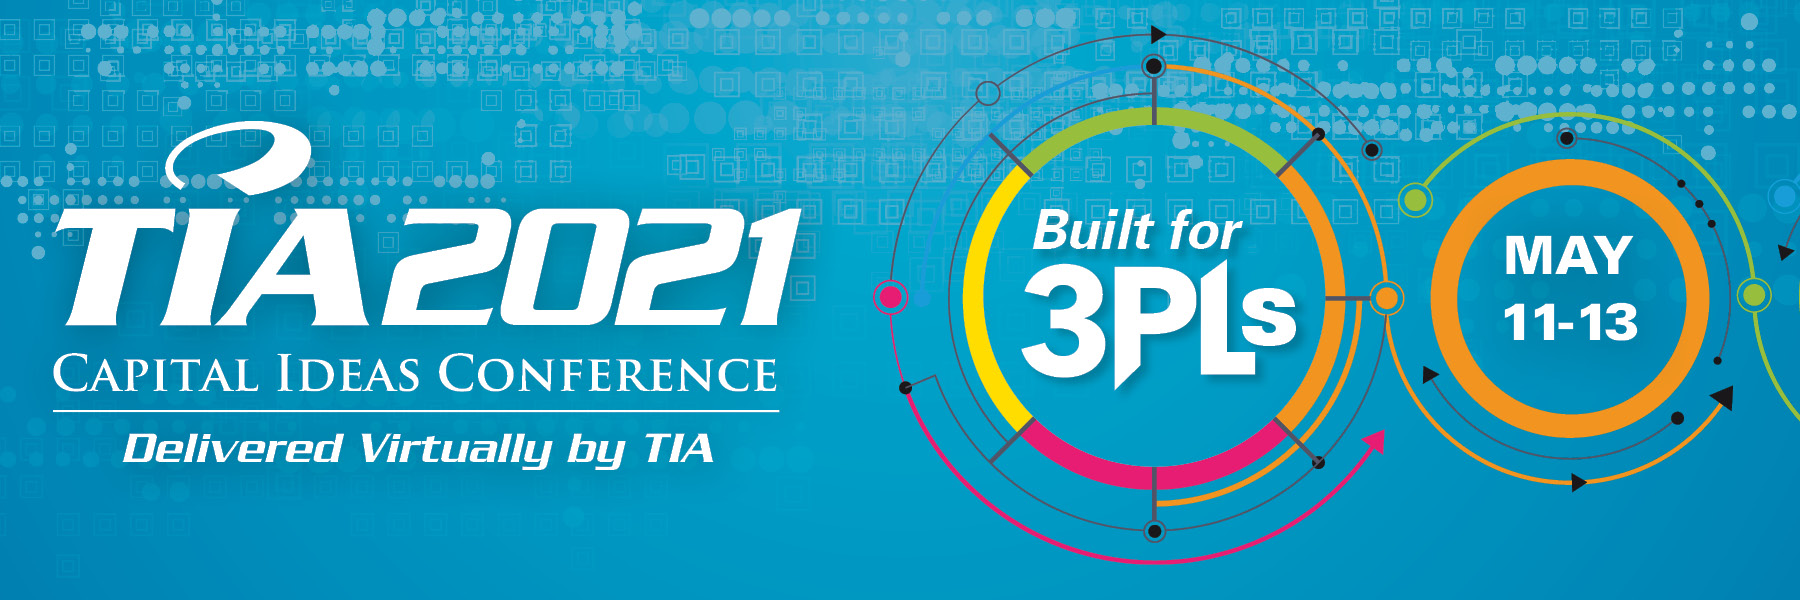 TIA 2021 Conference Banner (1800x600)